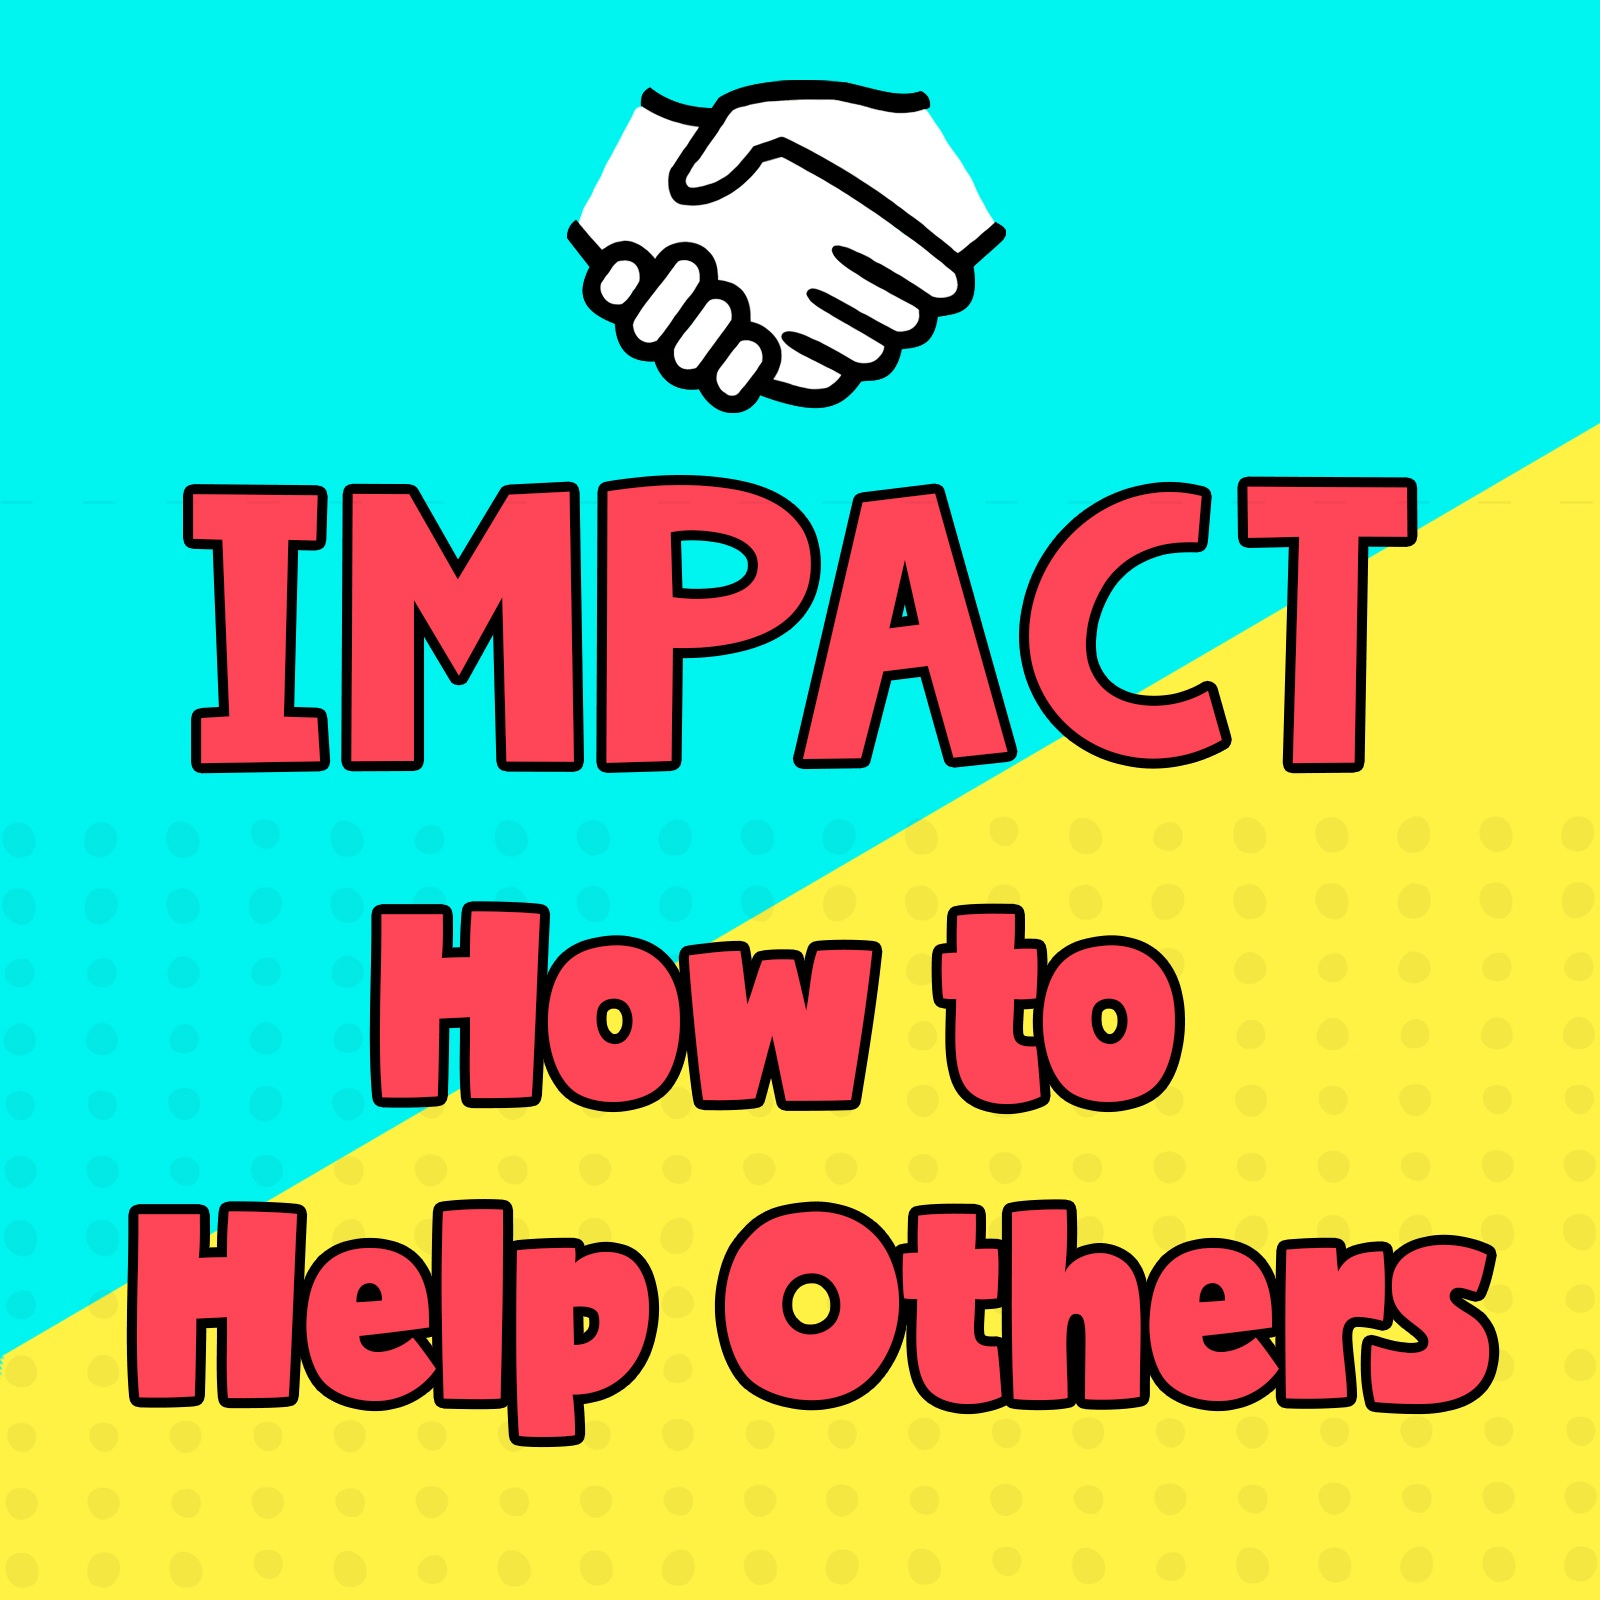 Volunteer how to help others